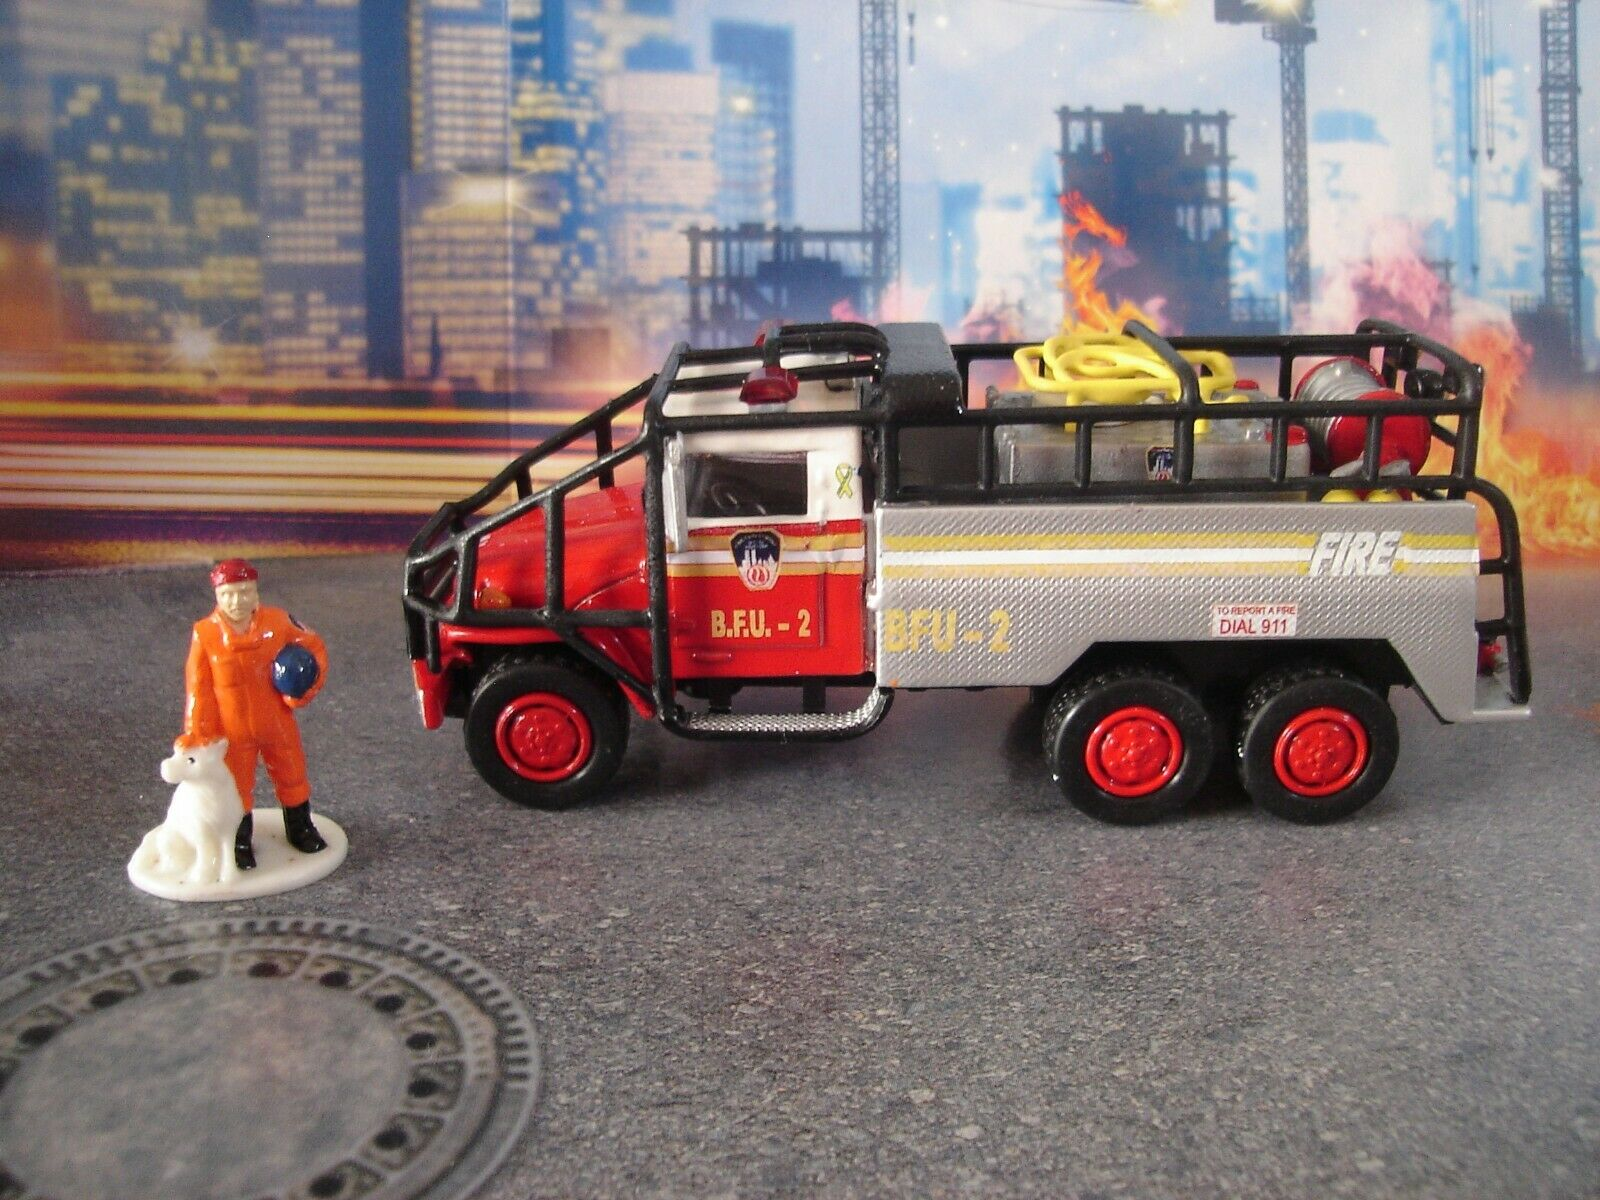 FOR  CODE 3 KITBAST FDNY  BFU -   2    WITH FIGURE    1 64 SCALE